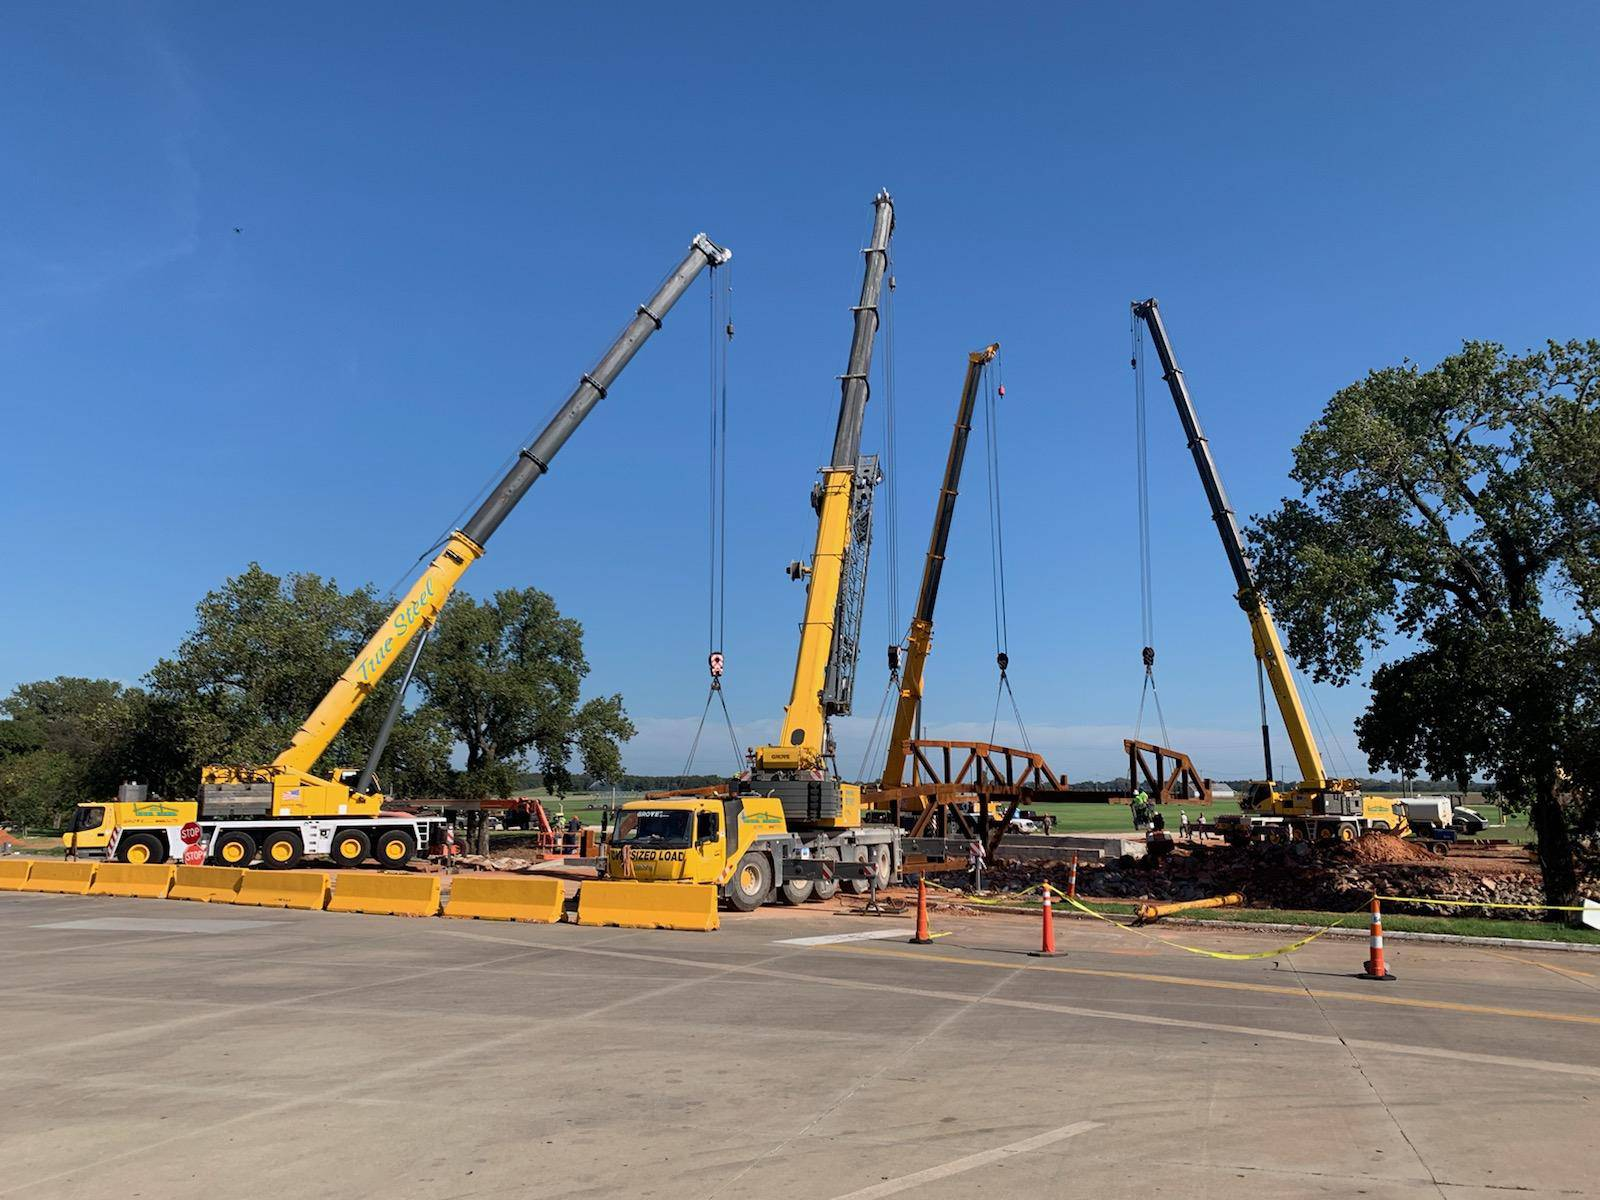 True Steel Crane & Rental - True Steel rental equipment available in OKC, Enid, Ada, and Kingfisher - cranes and equipment at work - crane rental Oklahoma City.